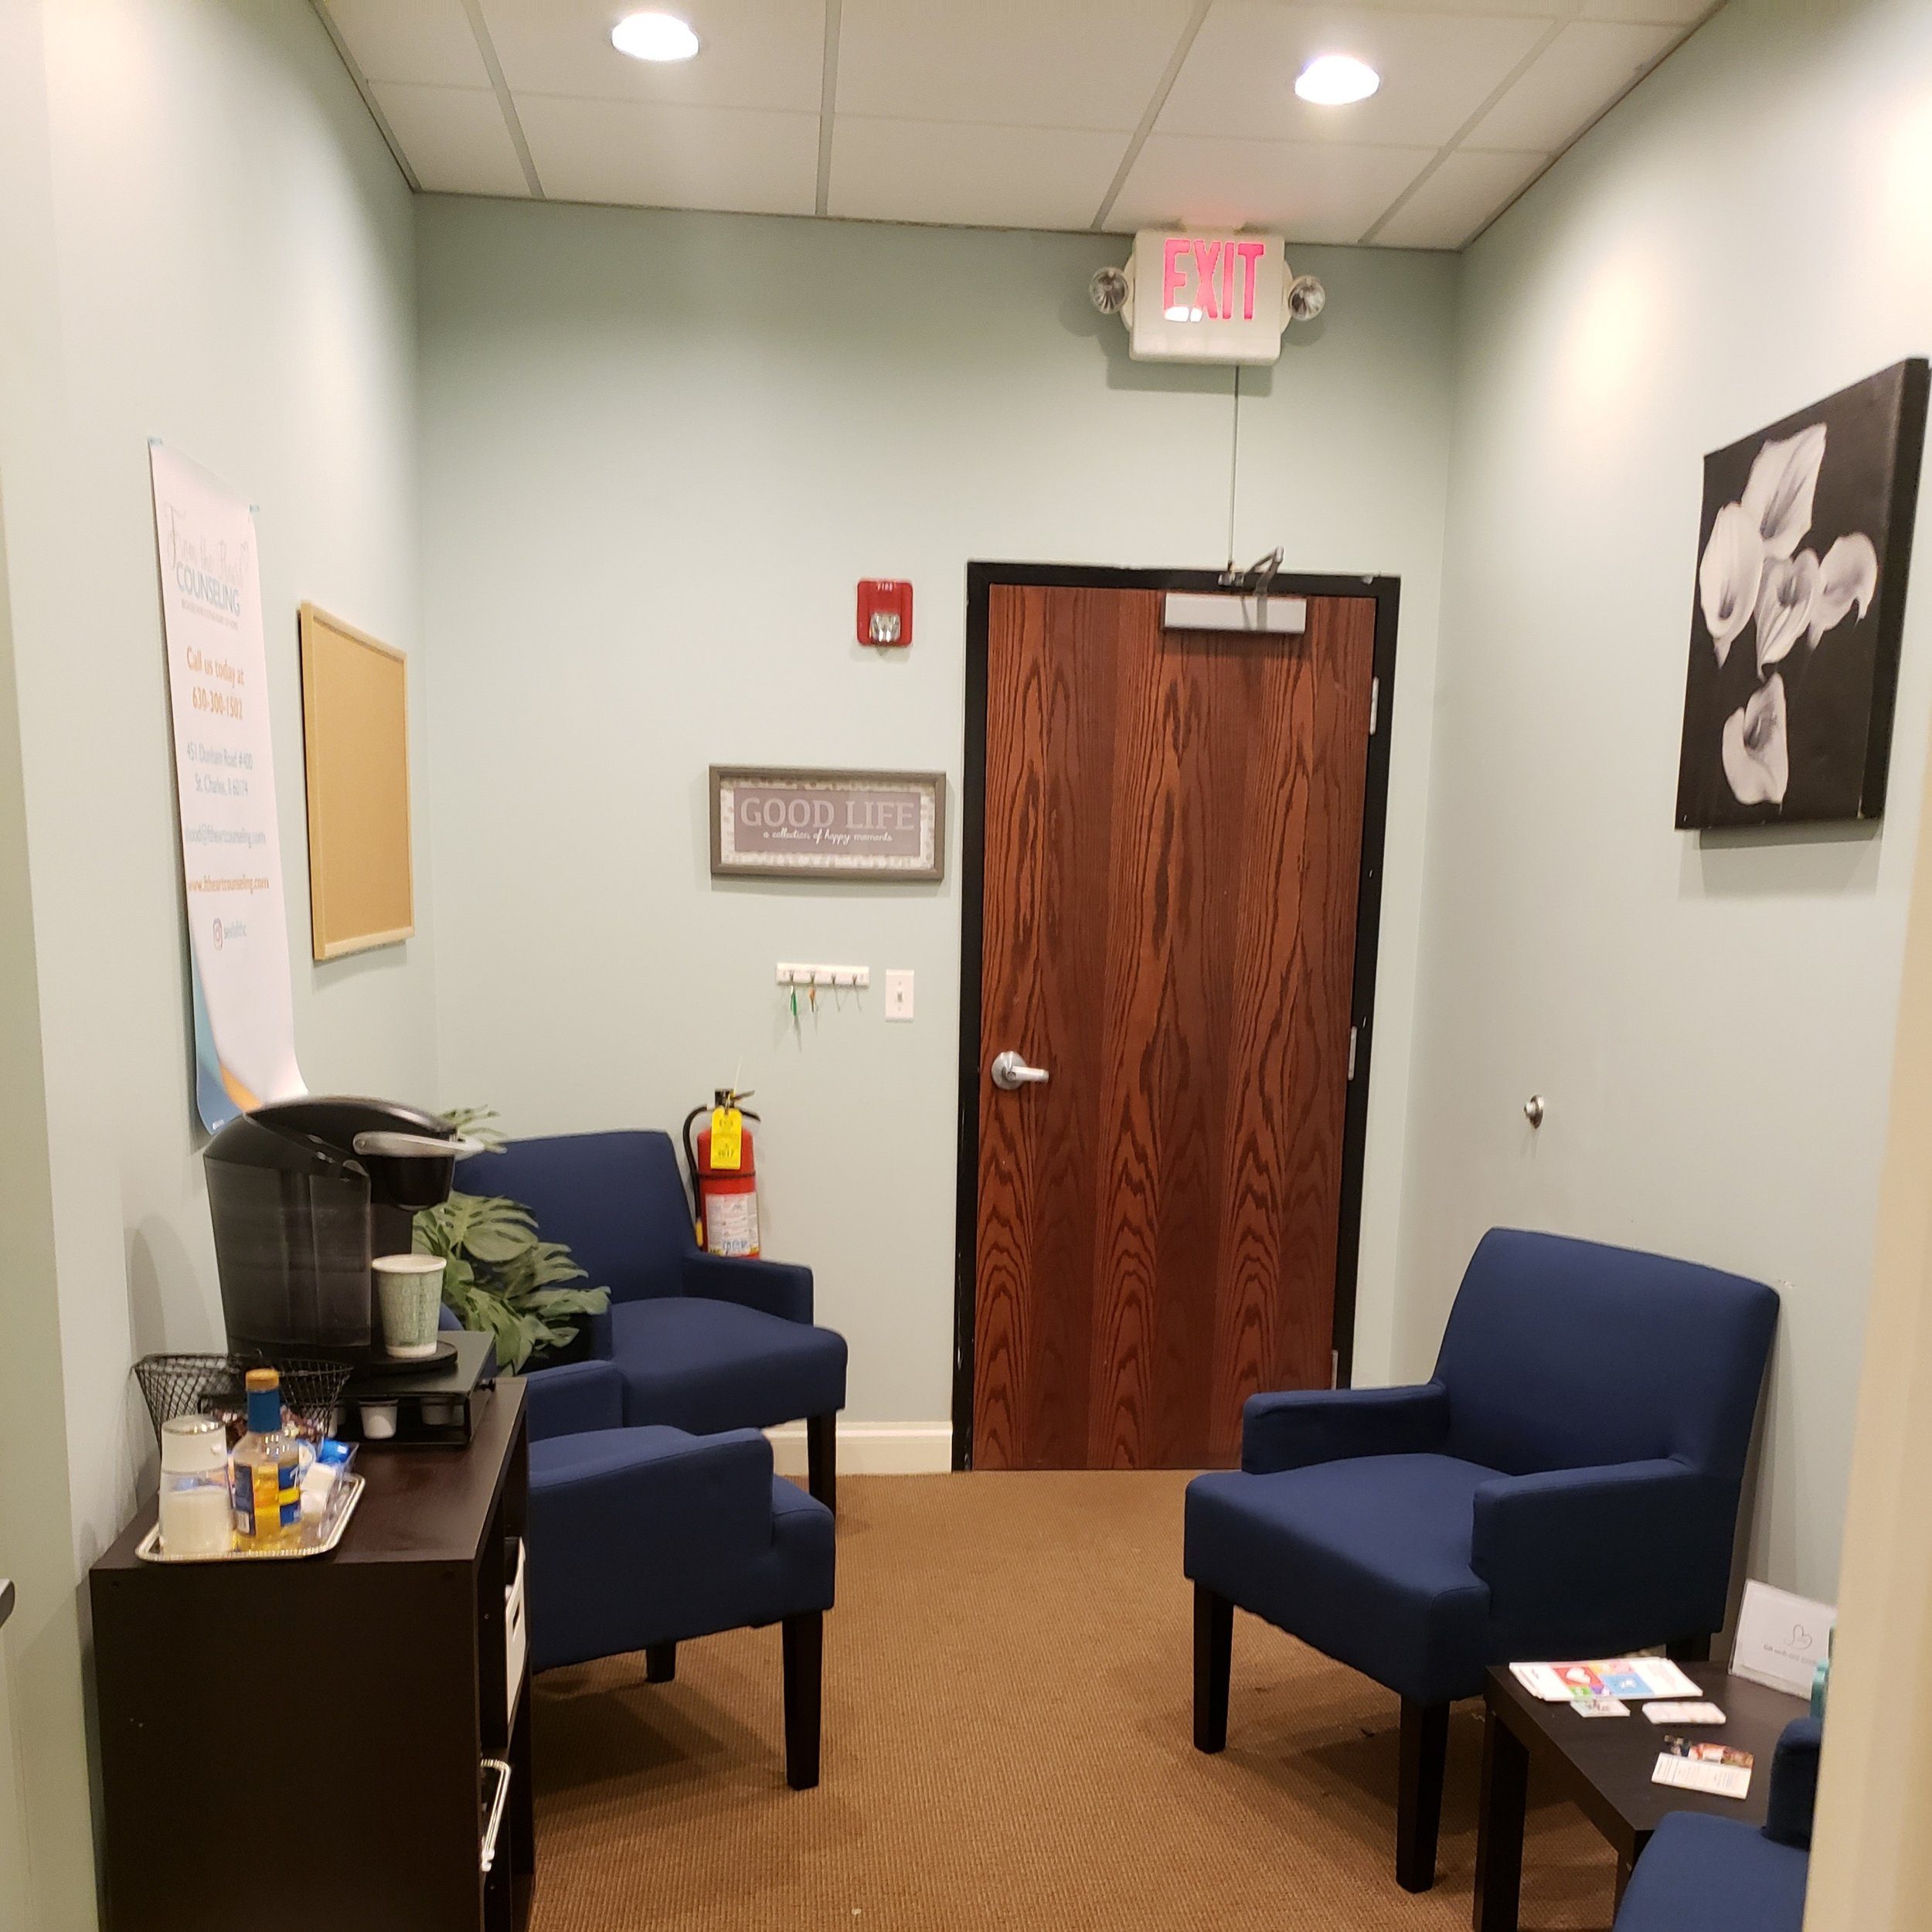 A Prominent Private Therapy Practice in St. Charles, IL - At From The Heart Counseling, Inc. we focus on heart-centered compassionate care where the client is our top priority.